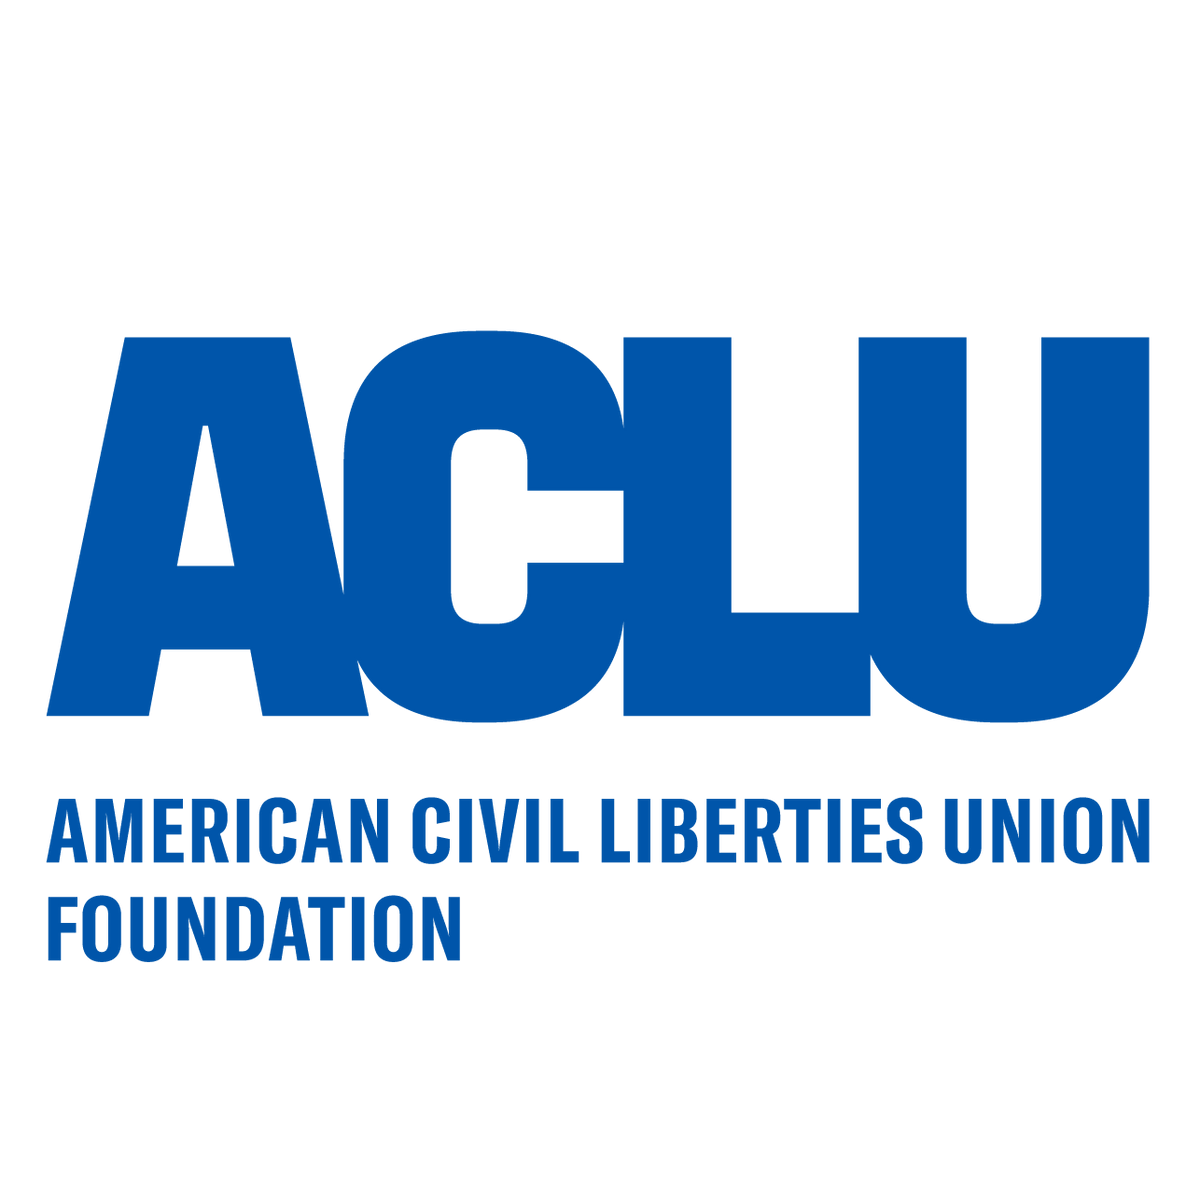 Donate $1 to ACLU